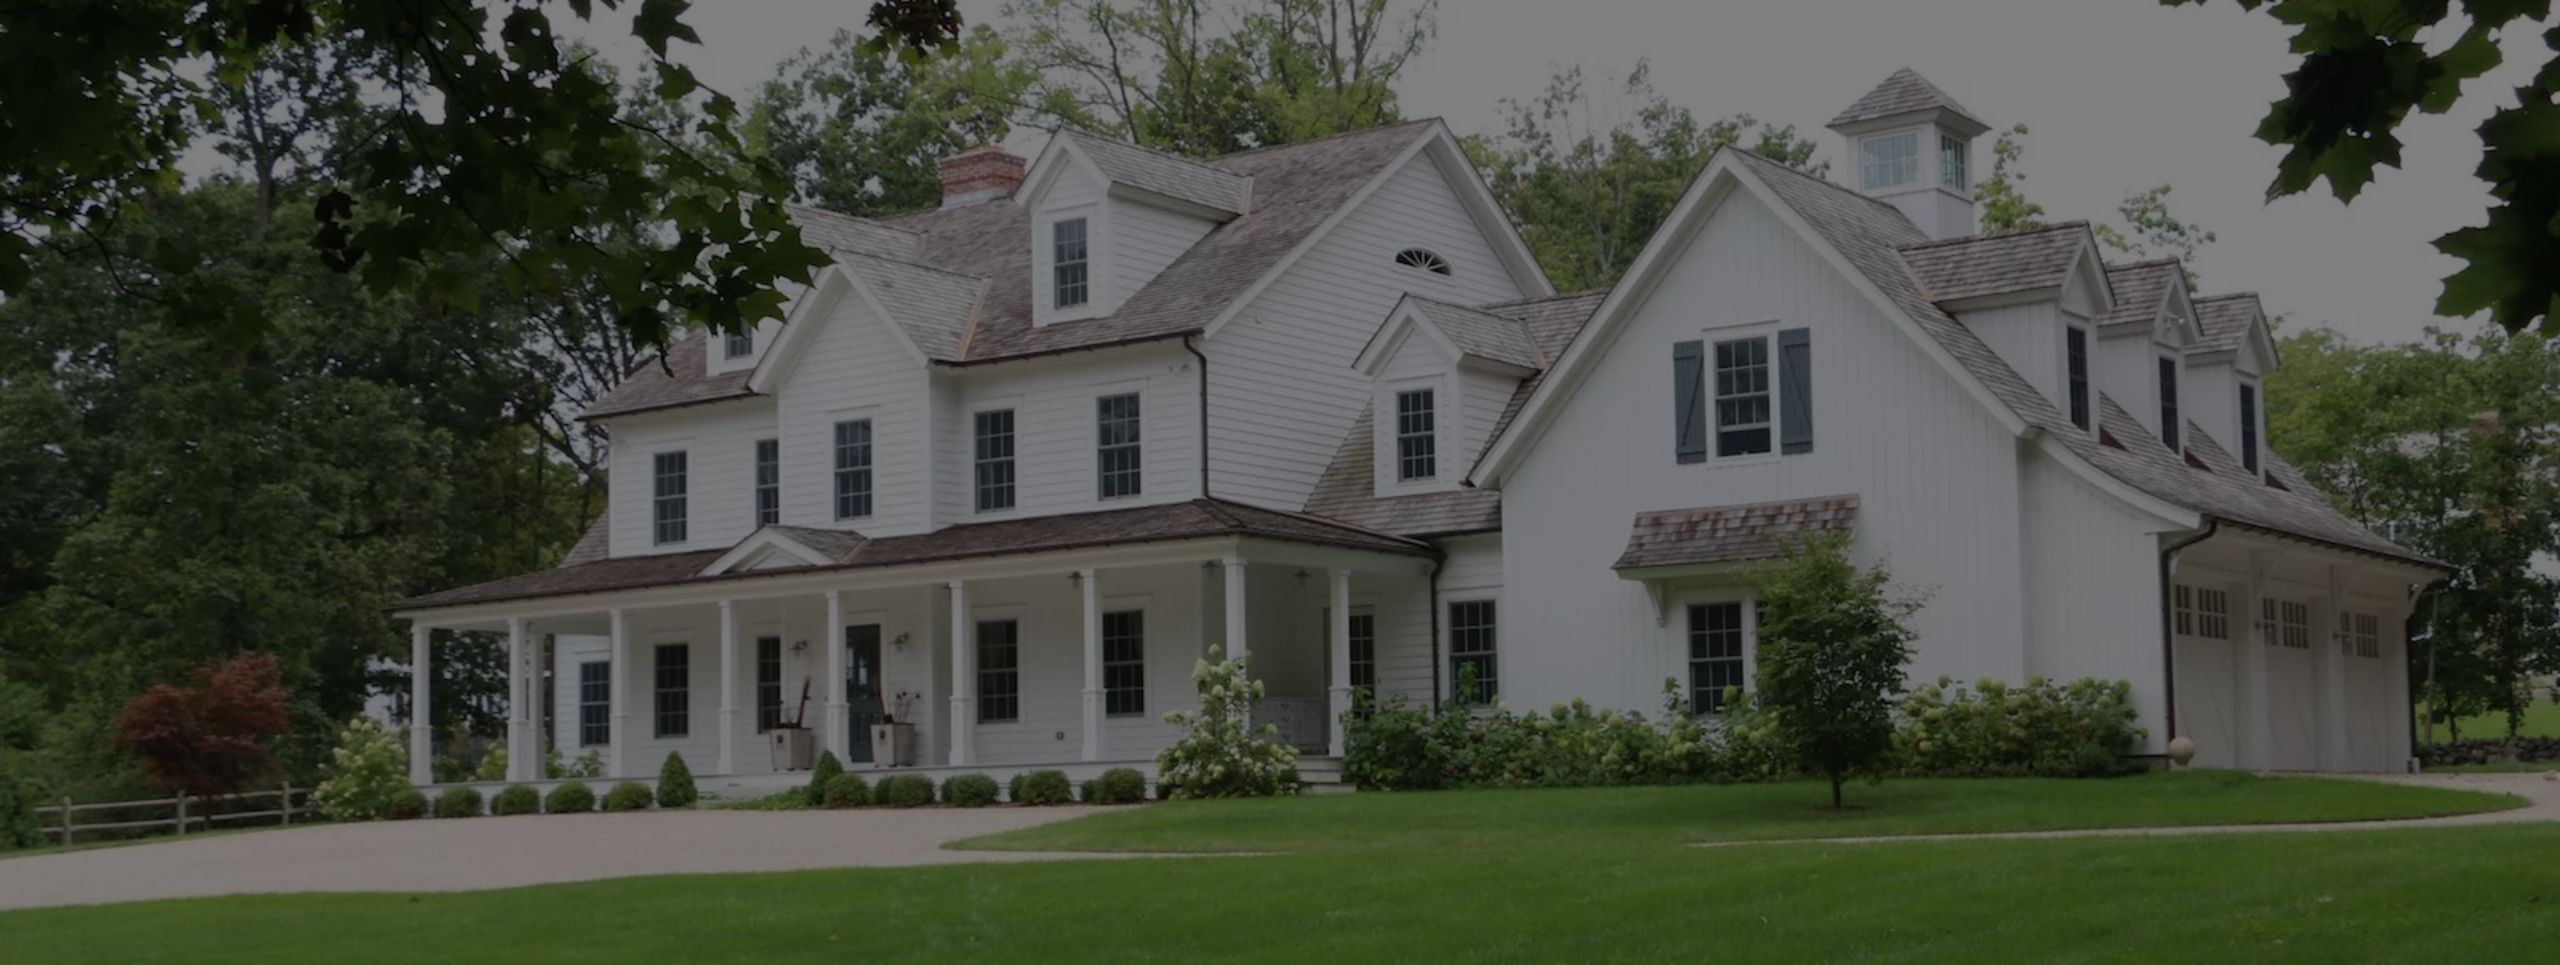 New Canaan CT Homes For Sale | Michael Teng at Keller Williams Greenwich